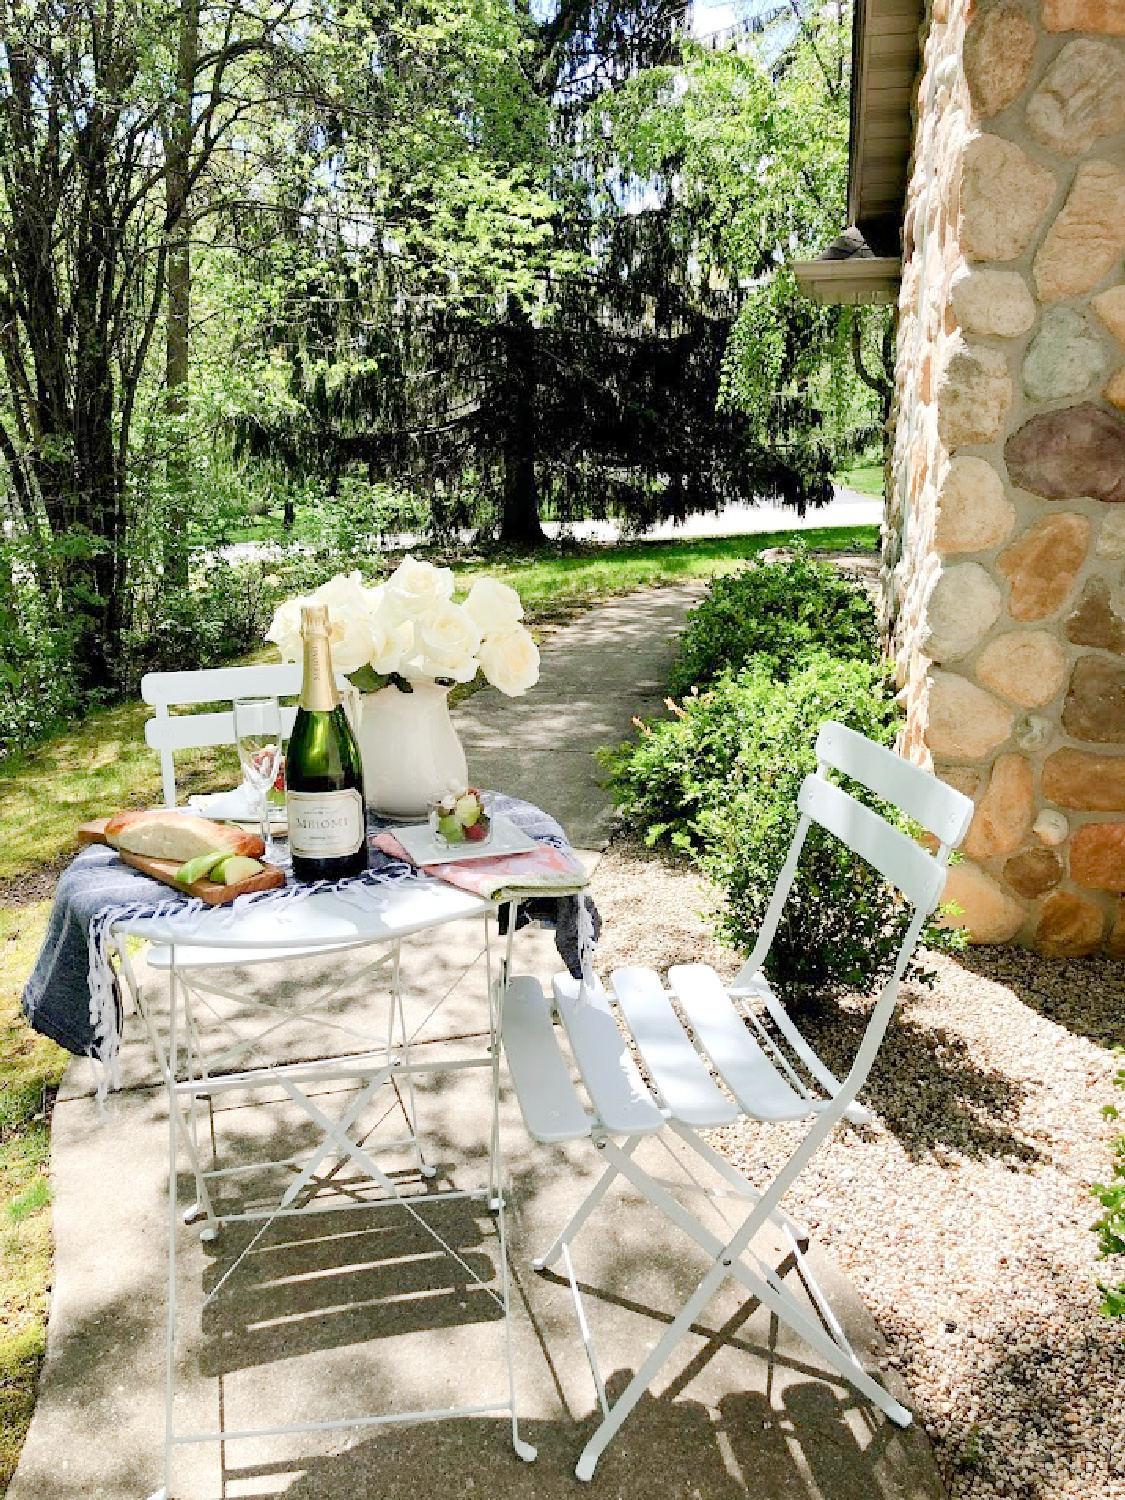 Charmingly French country and rustic casual dining outdoors with white cafe chairs - Hello Lovely Studio. #outdoordining #frenchaesthetic #countryfrench